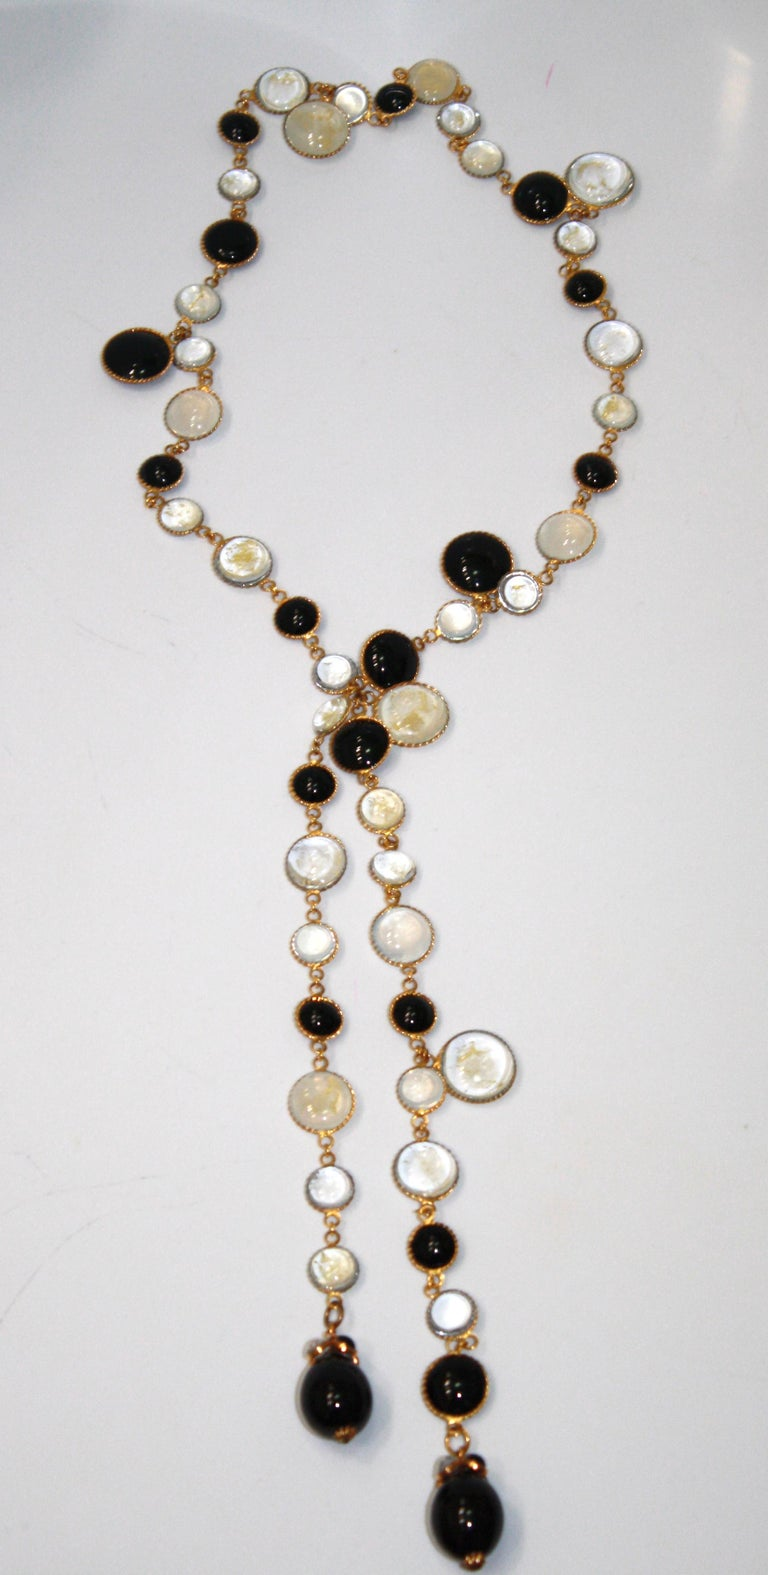 Poured glass in black, alabaster, clear,  gold leaf is inserted in the glass . Uniquely  made for Isabelle K Jewelry.. Process of pate de verre made by the former artisans of the former atelier of Gripoix.